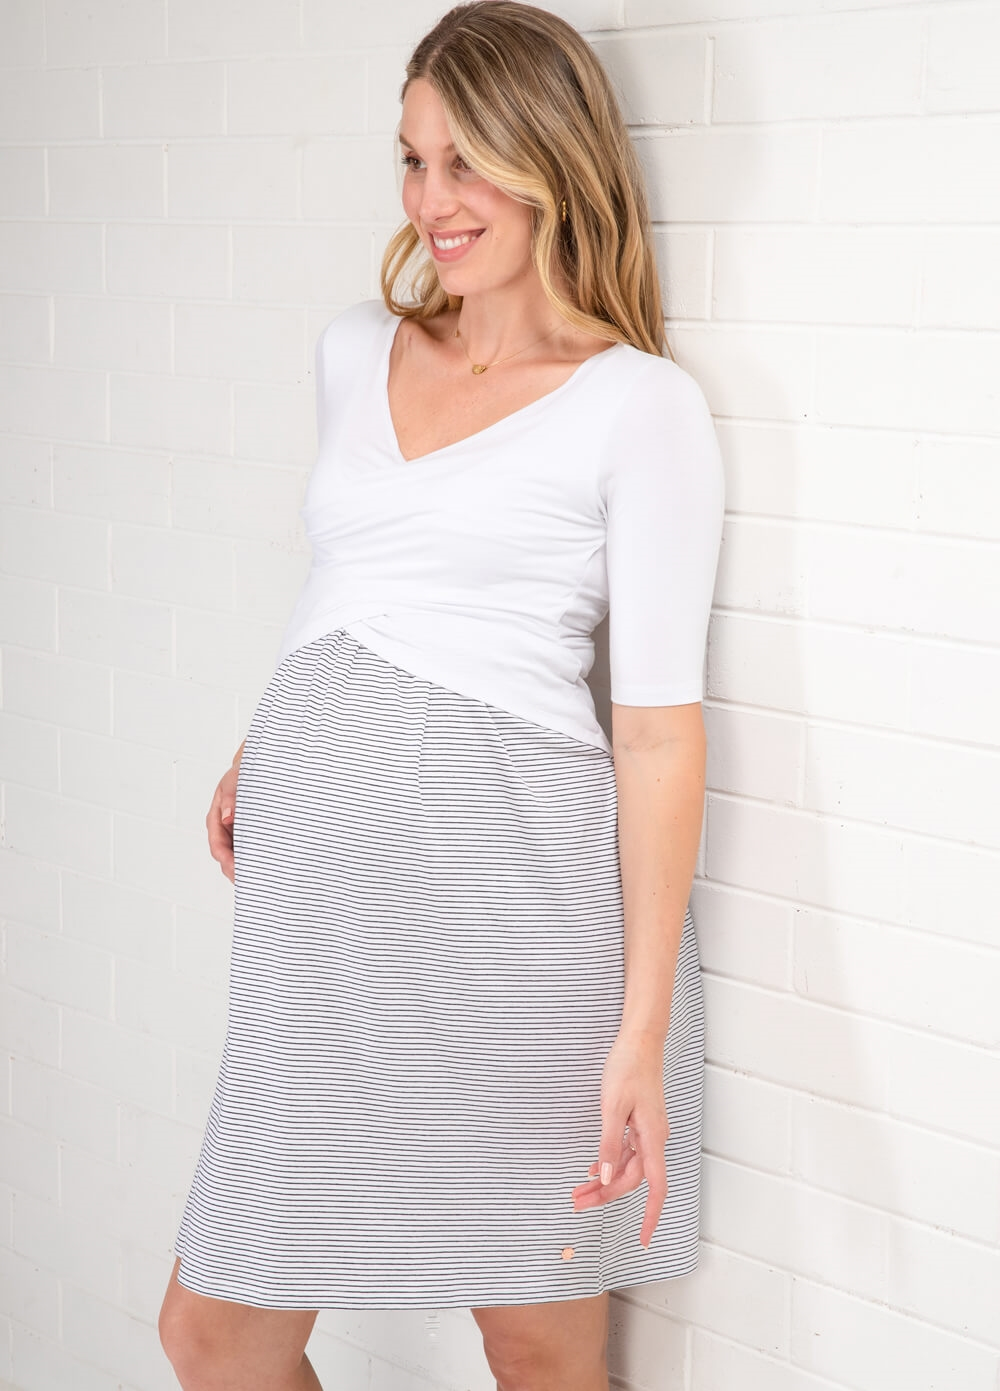 Floressa - Charlotte Crossover Maternity Nursing Dress |Queen Bee